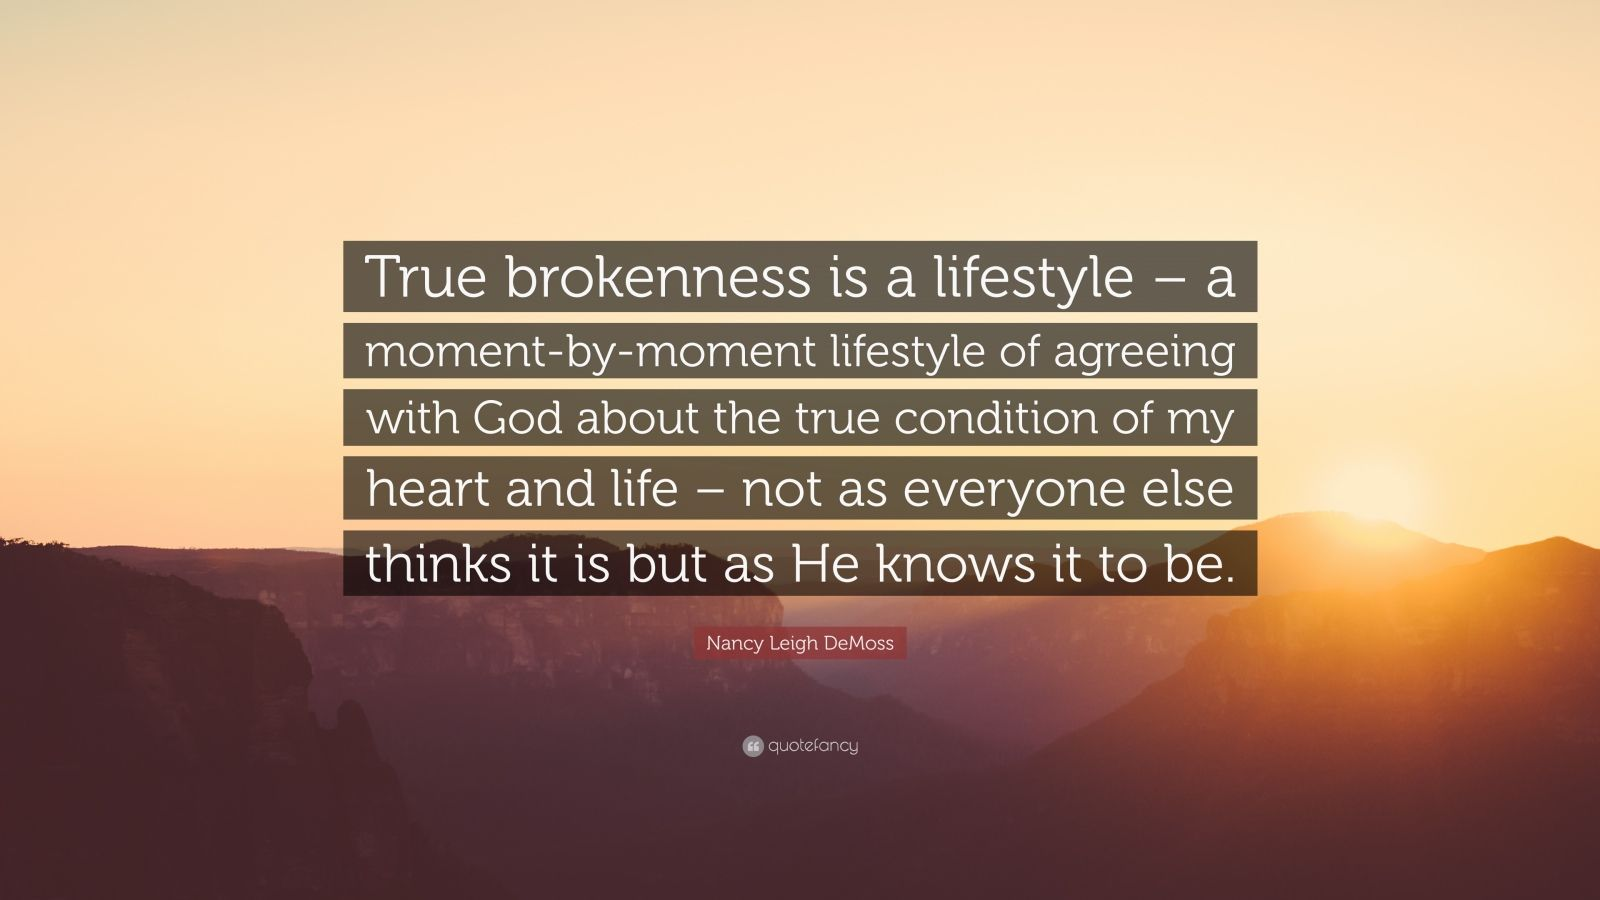 Swami Vivekananda Quotes Wallpaper Nancy Leigh Demoss Quote True Brokenness Is A Lifestyle